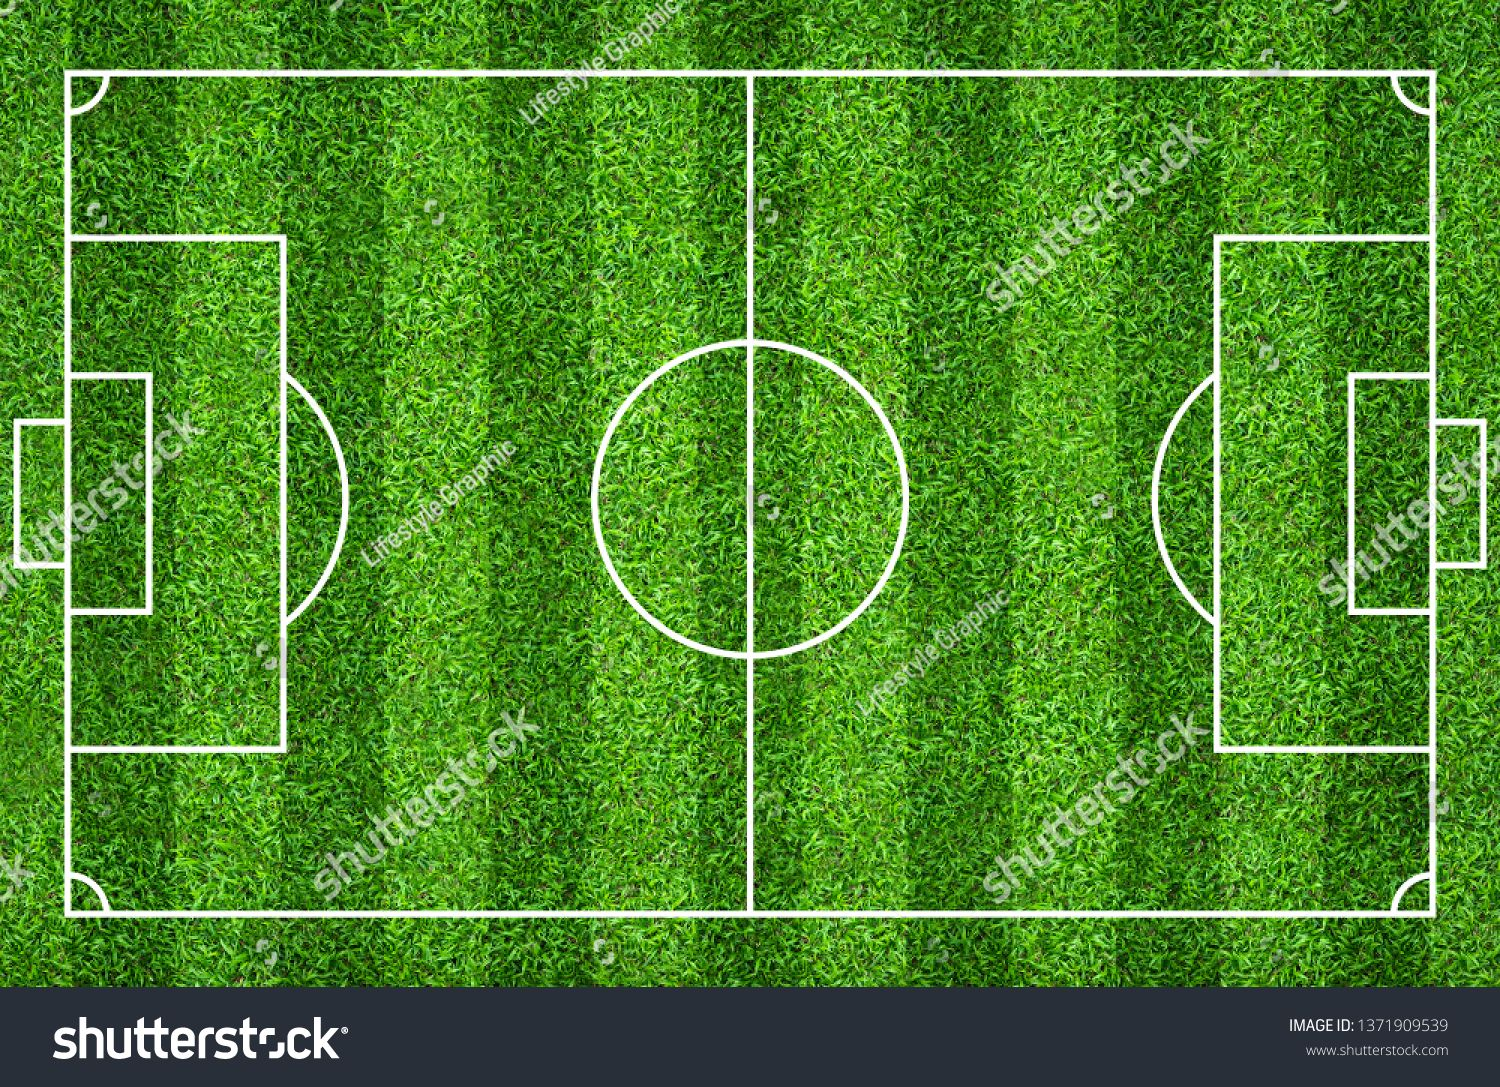 Football Field Or Soccer Field For Background Green Lawn Court For Create Sport Game Ad Ad Background Green Soccer F Football Field Soccer Field Soccer